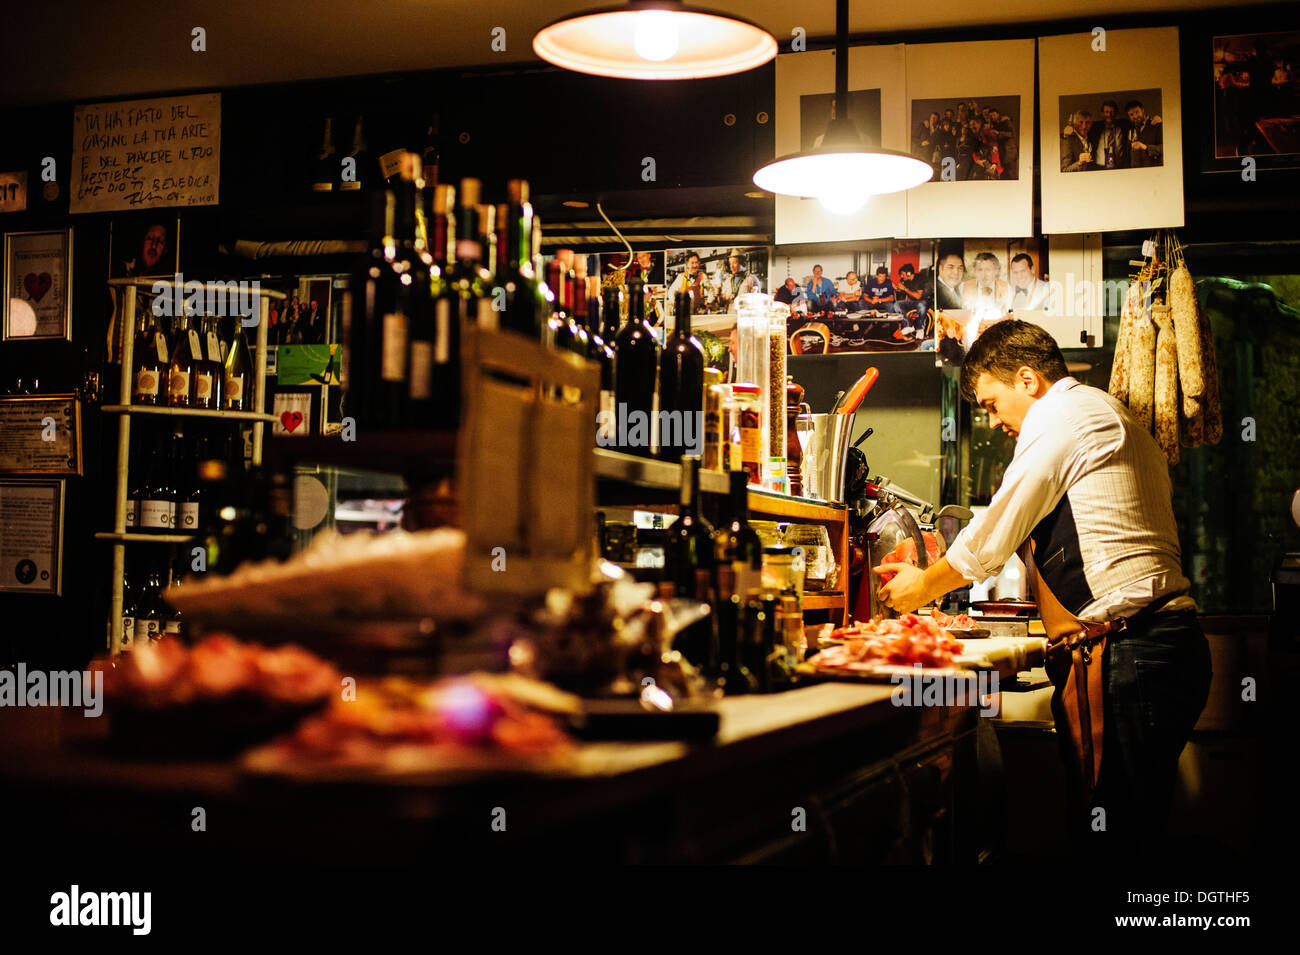 A server carrying a plater of dried meats at La Mascareta restaurant, Venice, Italy. - Stock Image